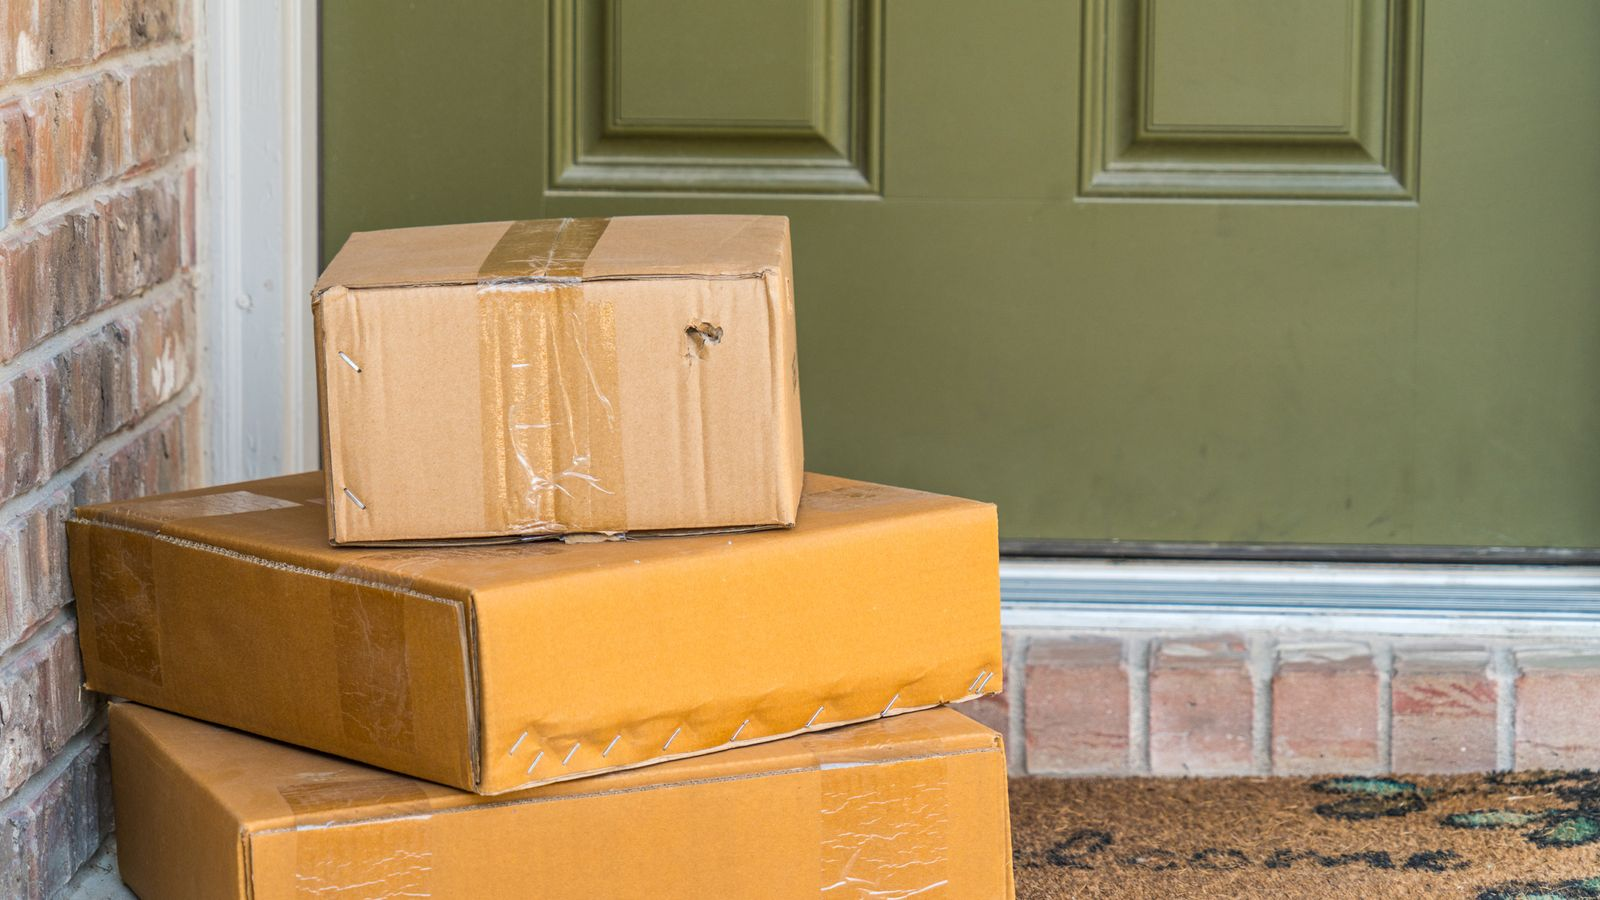 'My parcel was dropped in a toilet' - Christmas delivery issues revealed